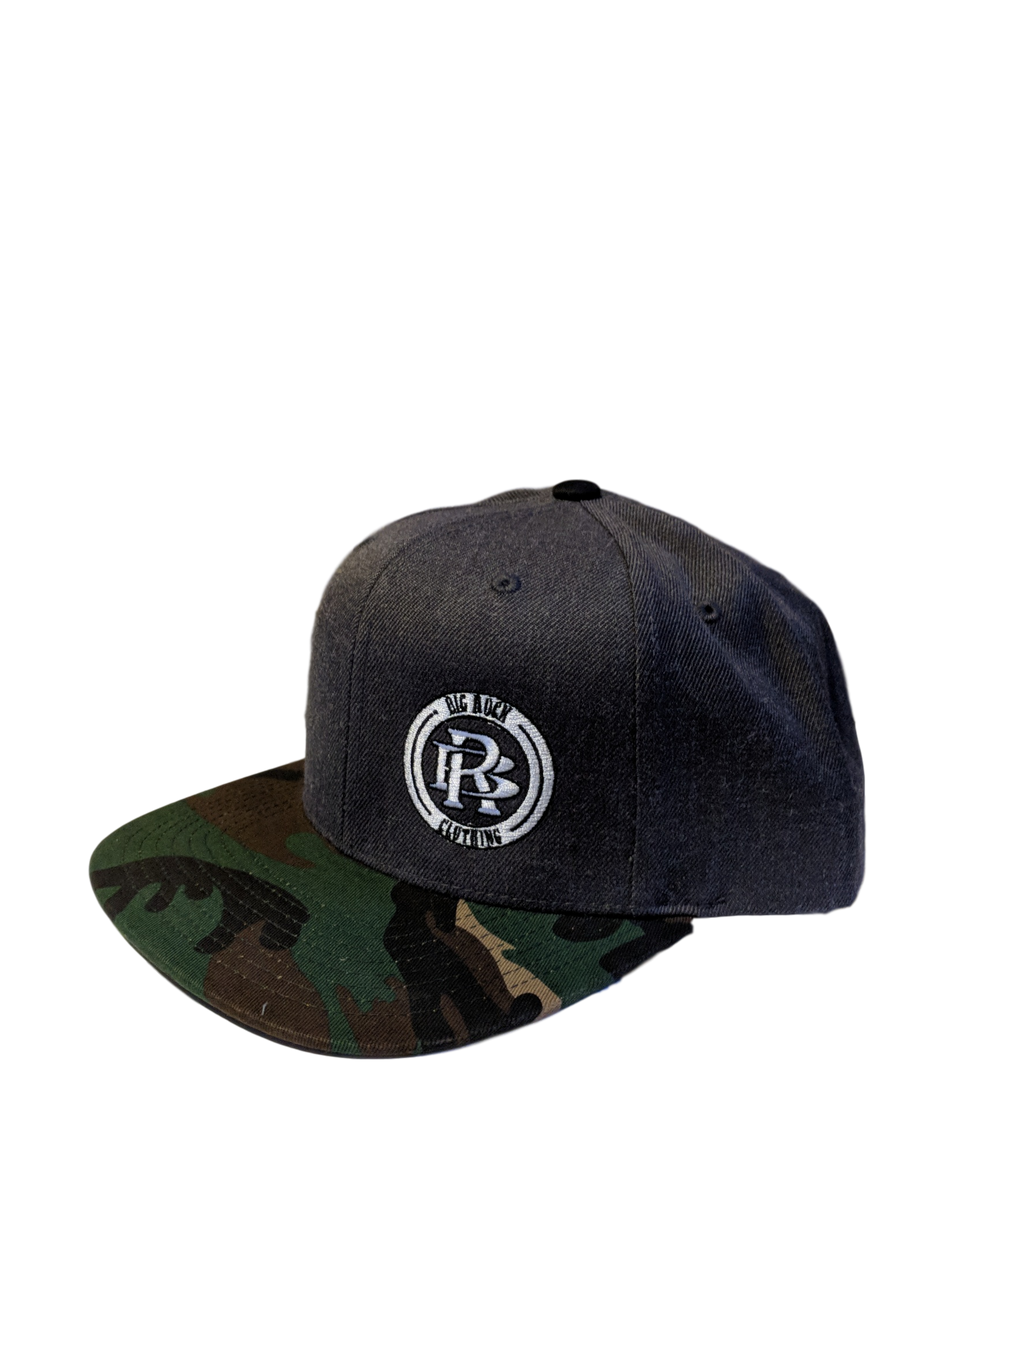 Hat- 6 Panel Wool Snapback Flat Brim